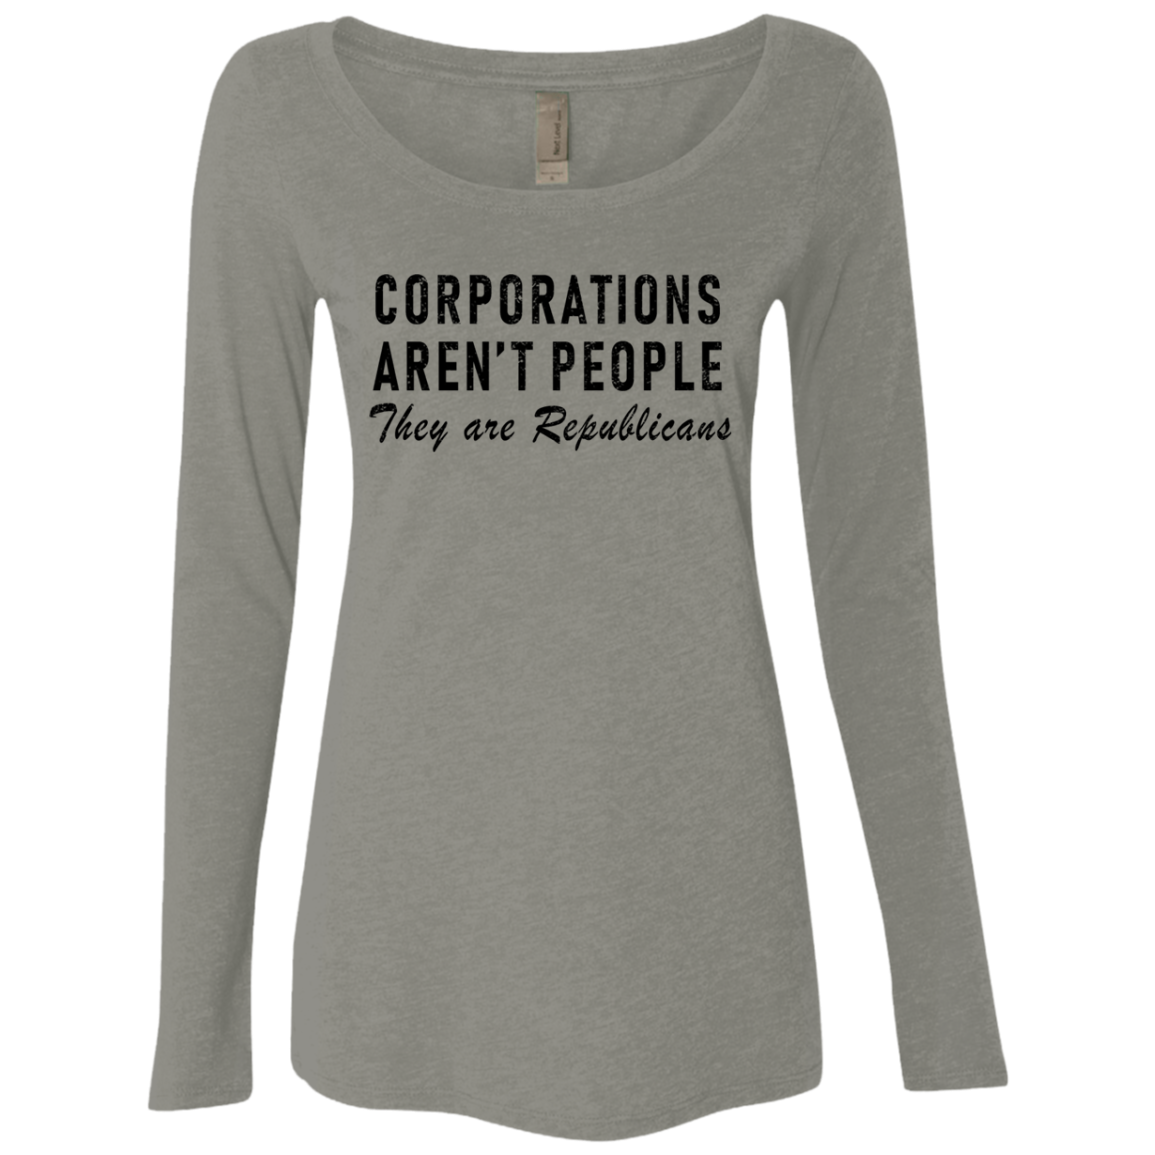 Corporations Aren't People They Are Republicans Women's Long Sleeve Tee